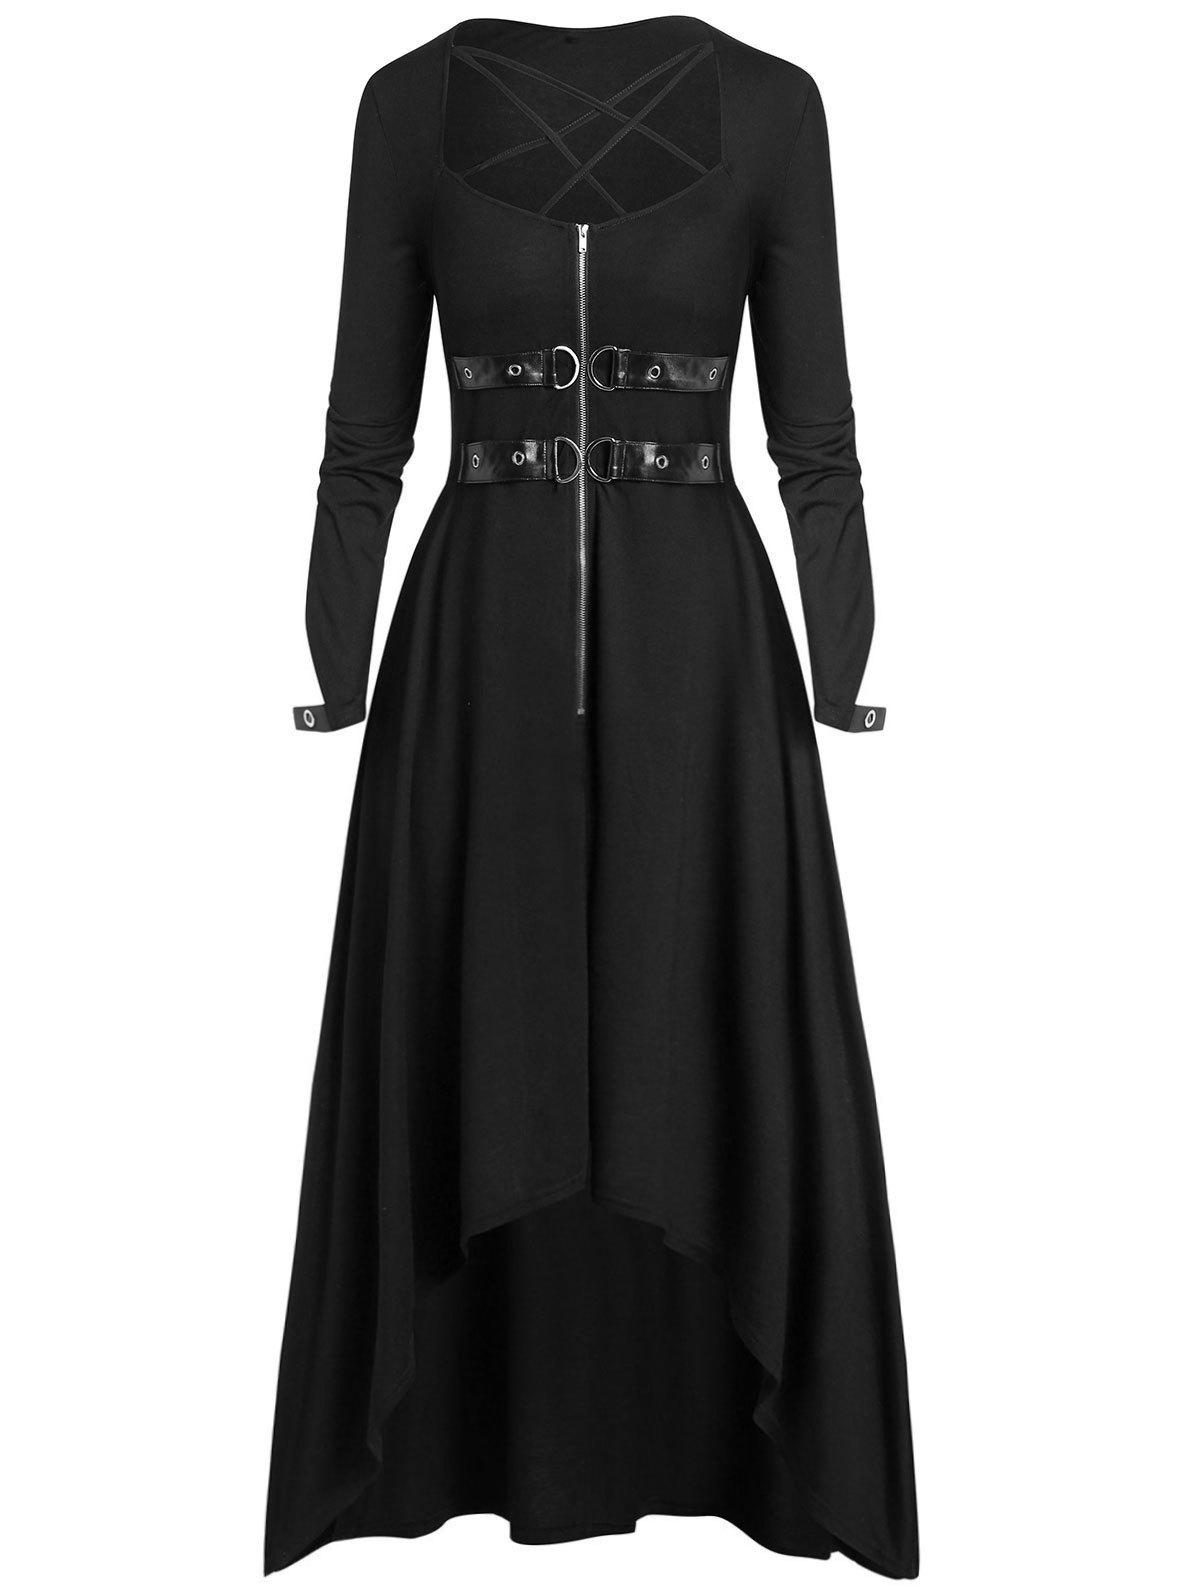 Plus Size Halloween Buckle Zippered High Low Long Dress - BLACK 3X